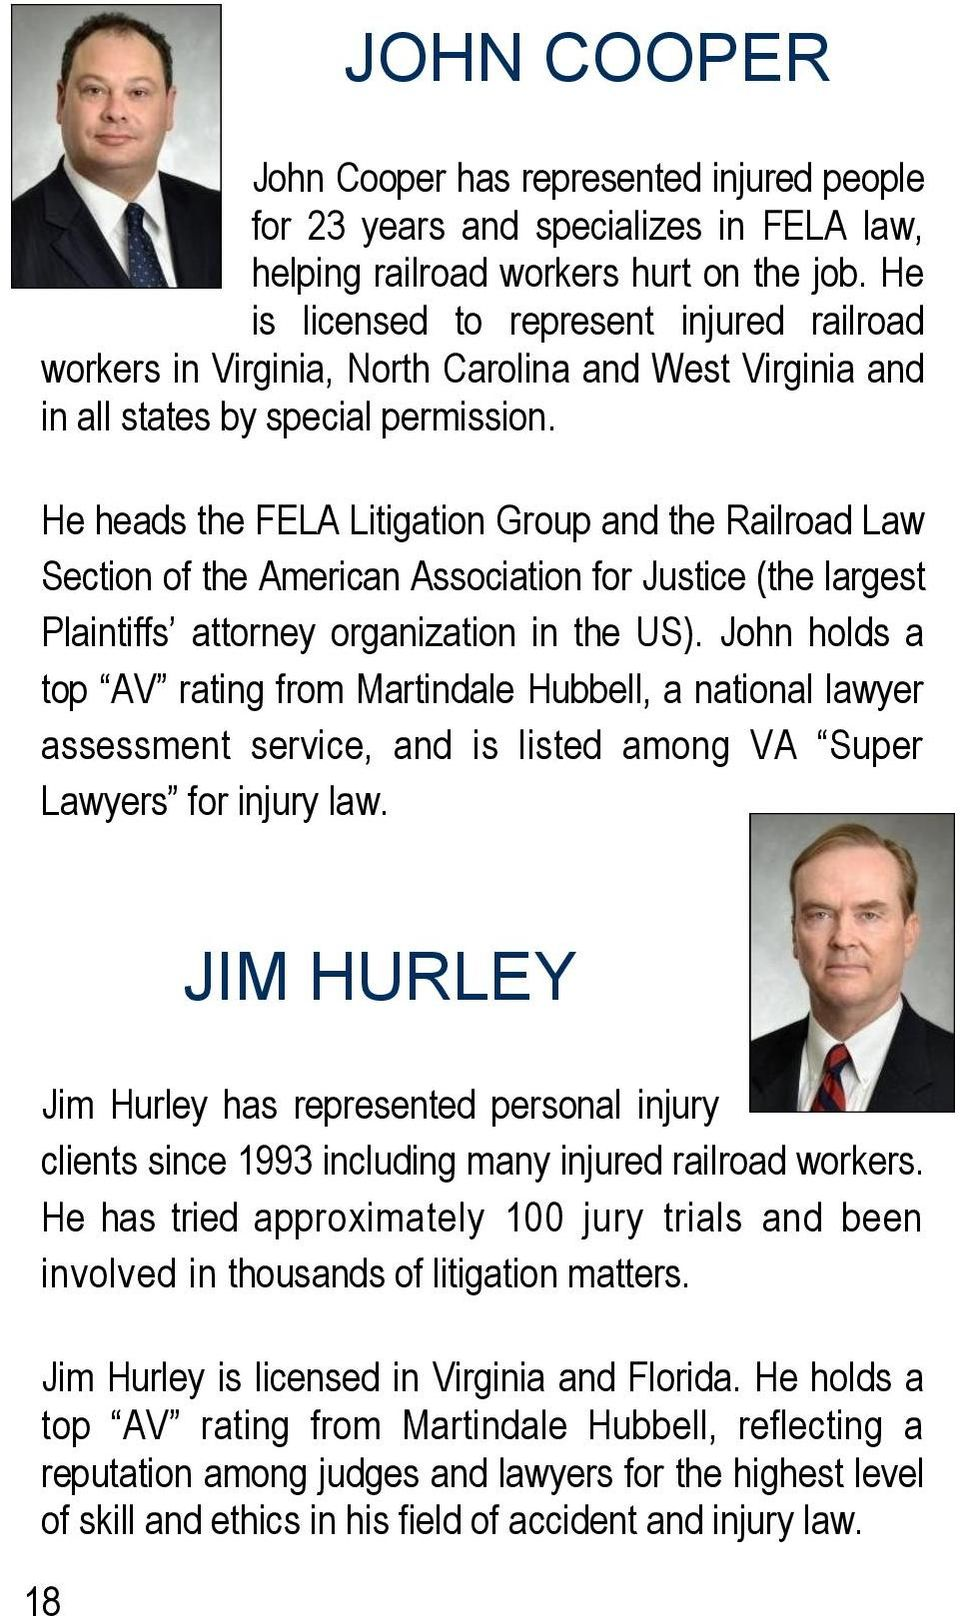 He heads the FELA Litigation Group and the Railroad Law Section of the American Association for Justice (the largest Plaintiffs attorney organization in the US).